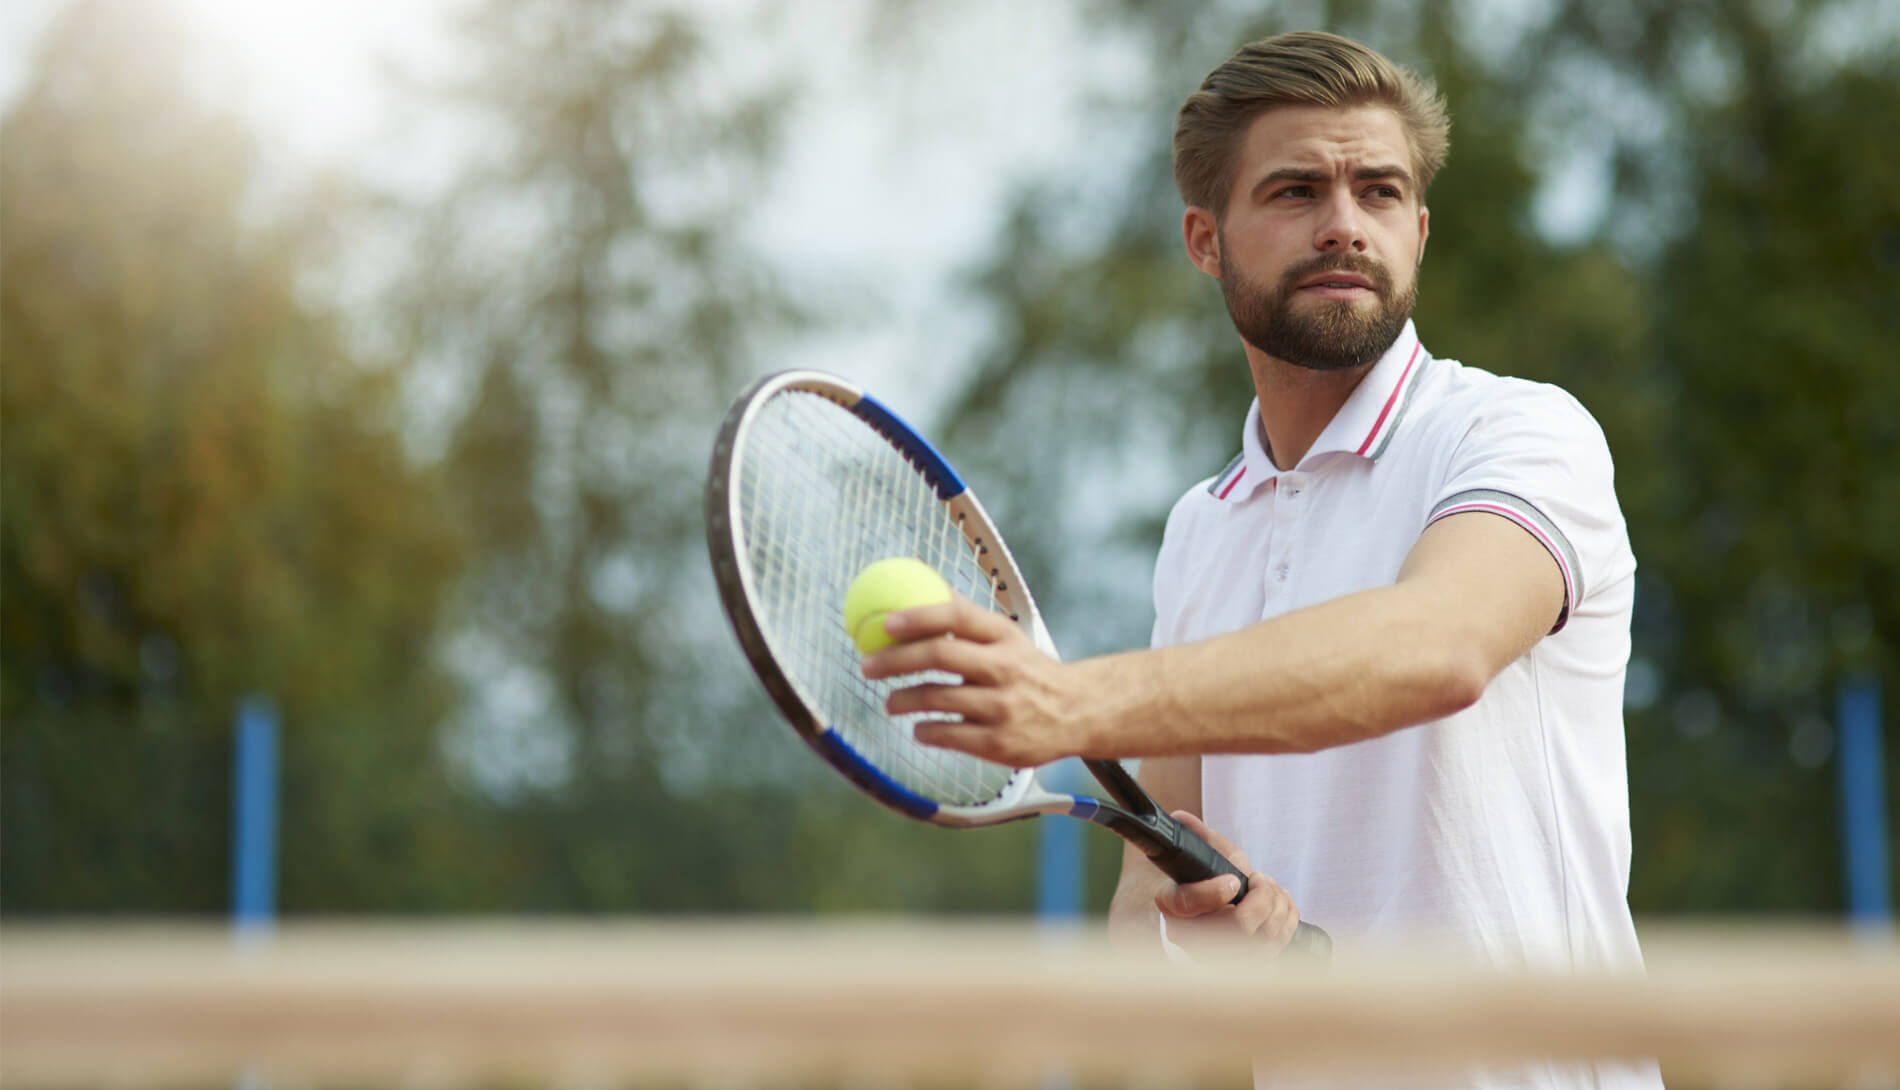 Man with tennis racquet